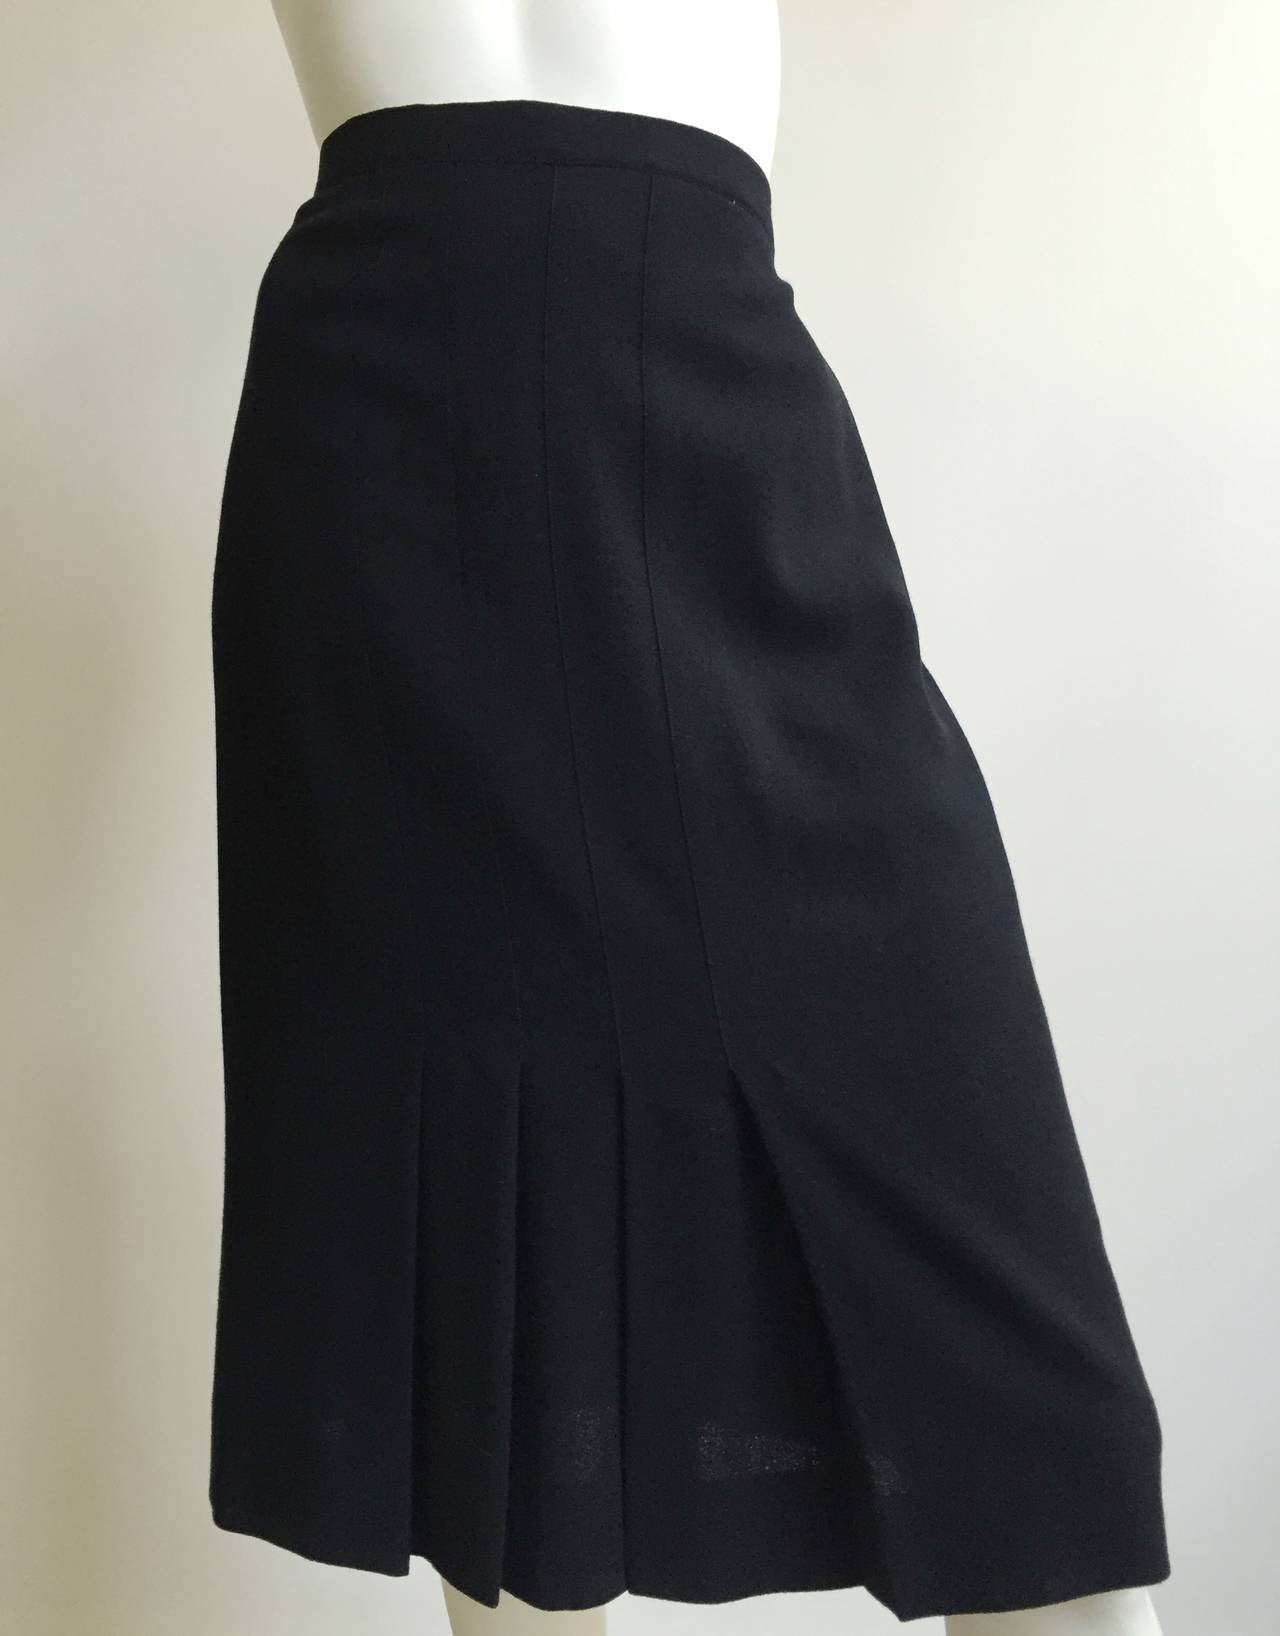 Chanel 80s Black Pleated Skirt Size 10. 10